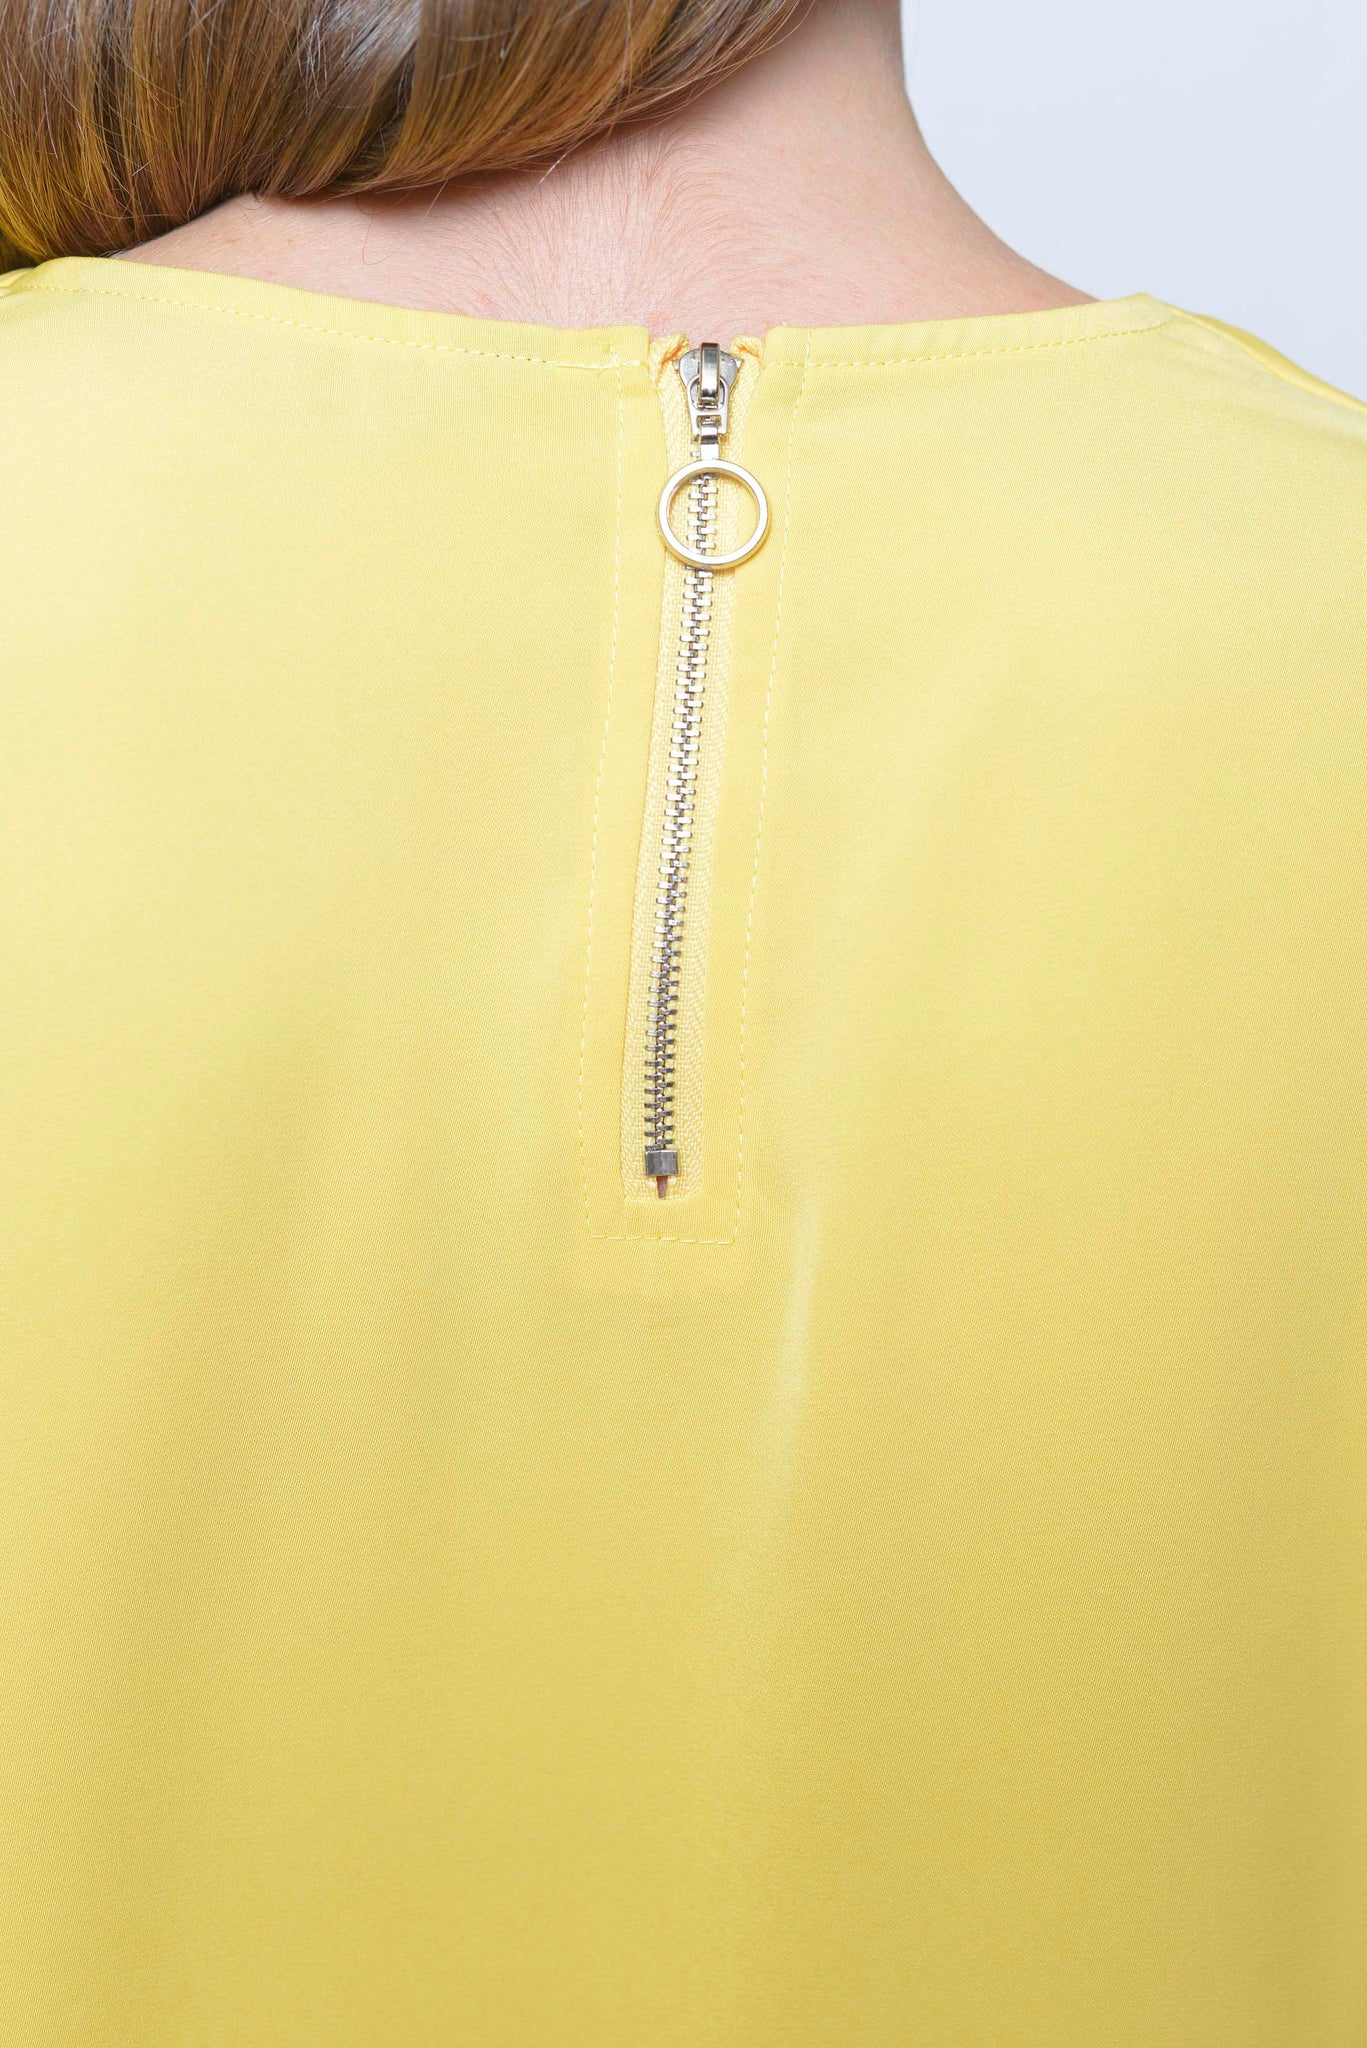 Basics-Jeanna Top in Yellow